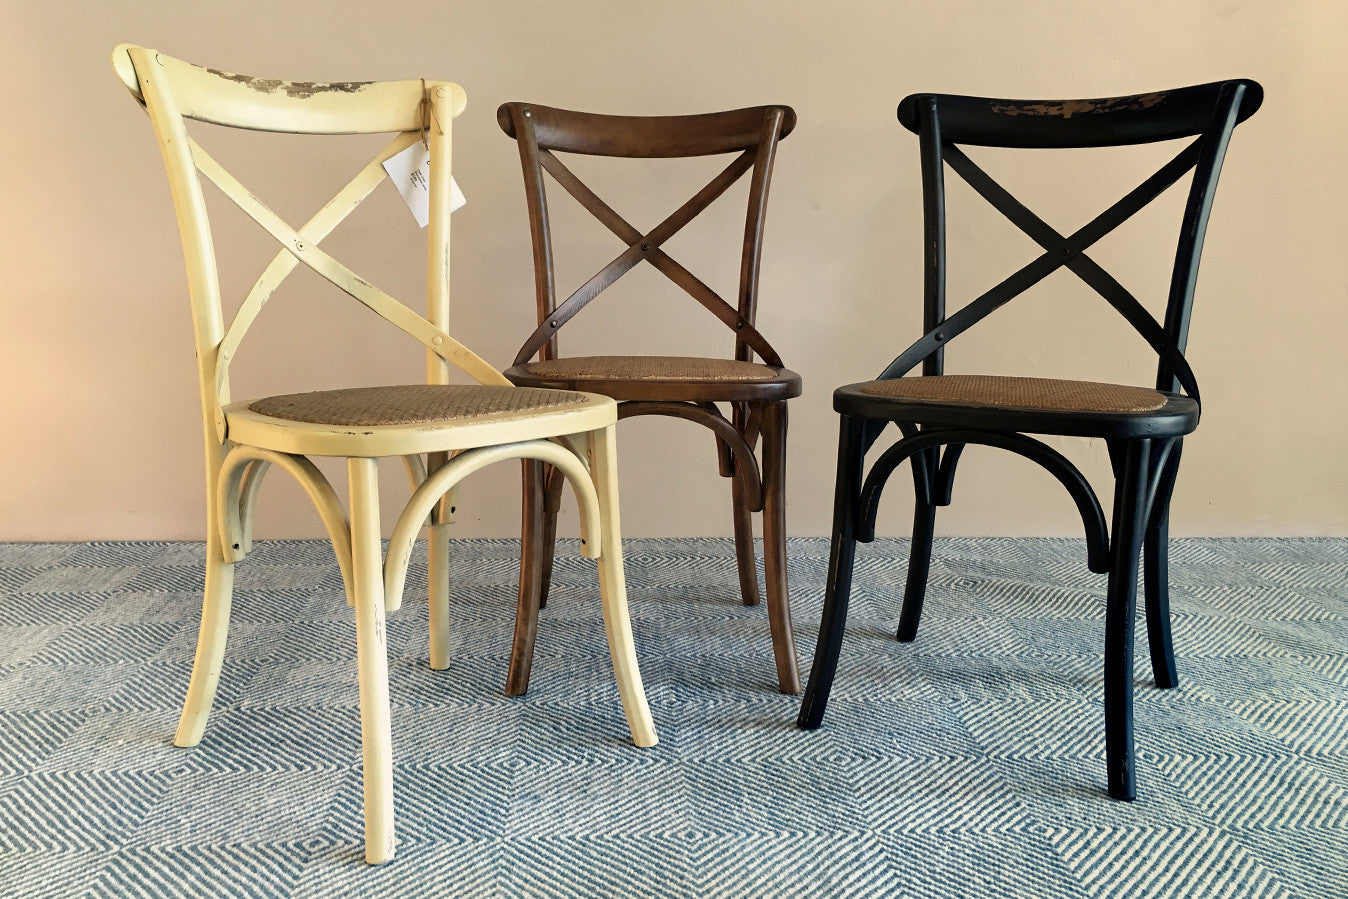 French cafe chairs table - Classic French Caf Style Multi Coloured Dining Chair